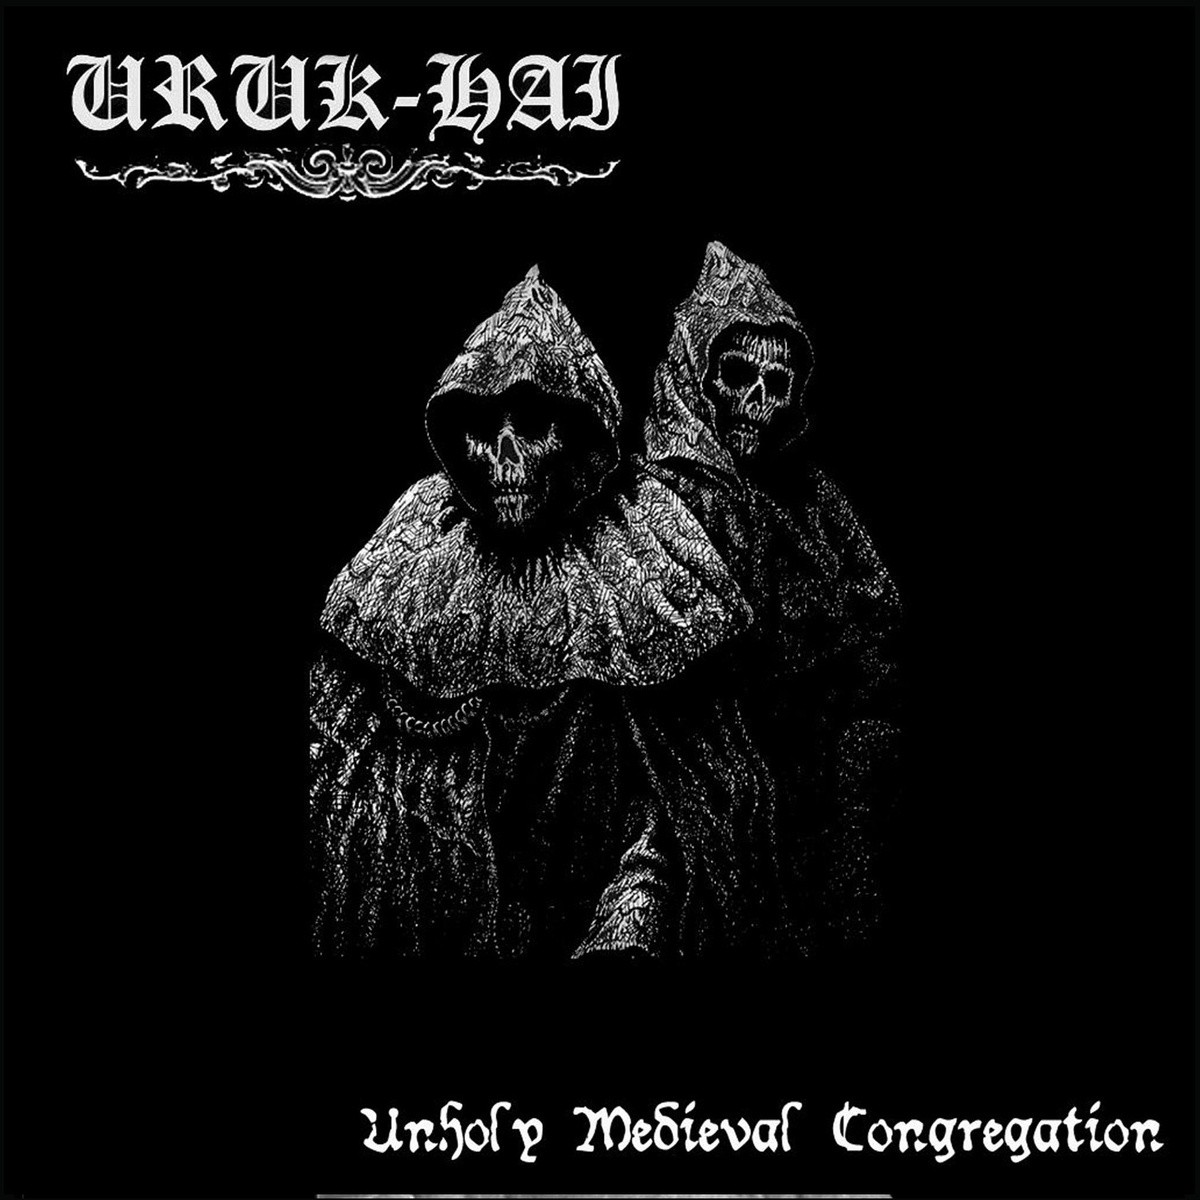 URUK HAI(spa) – Unholy Medieval Congregation